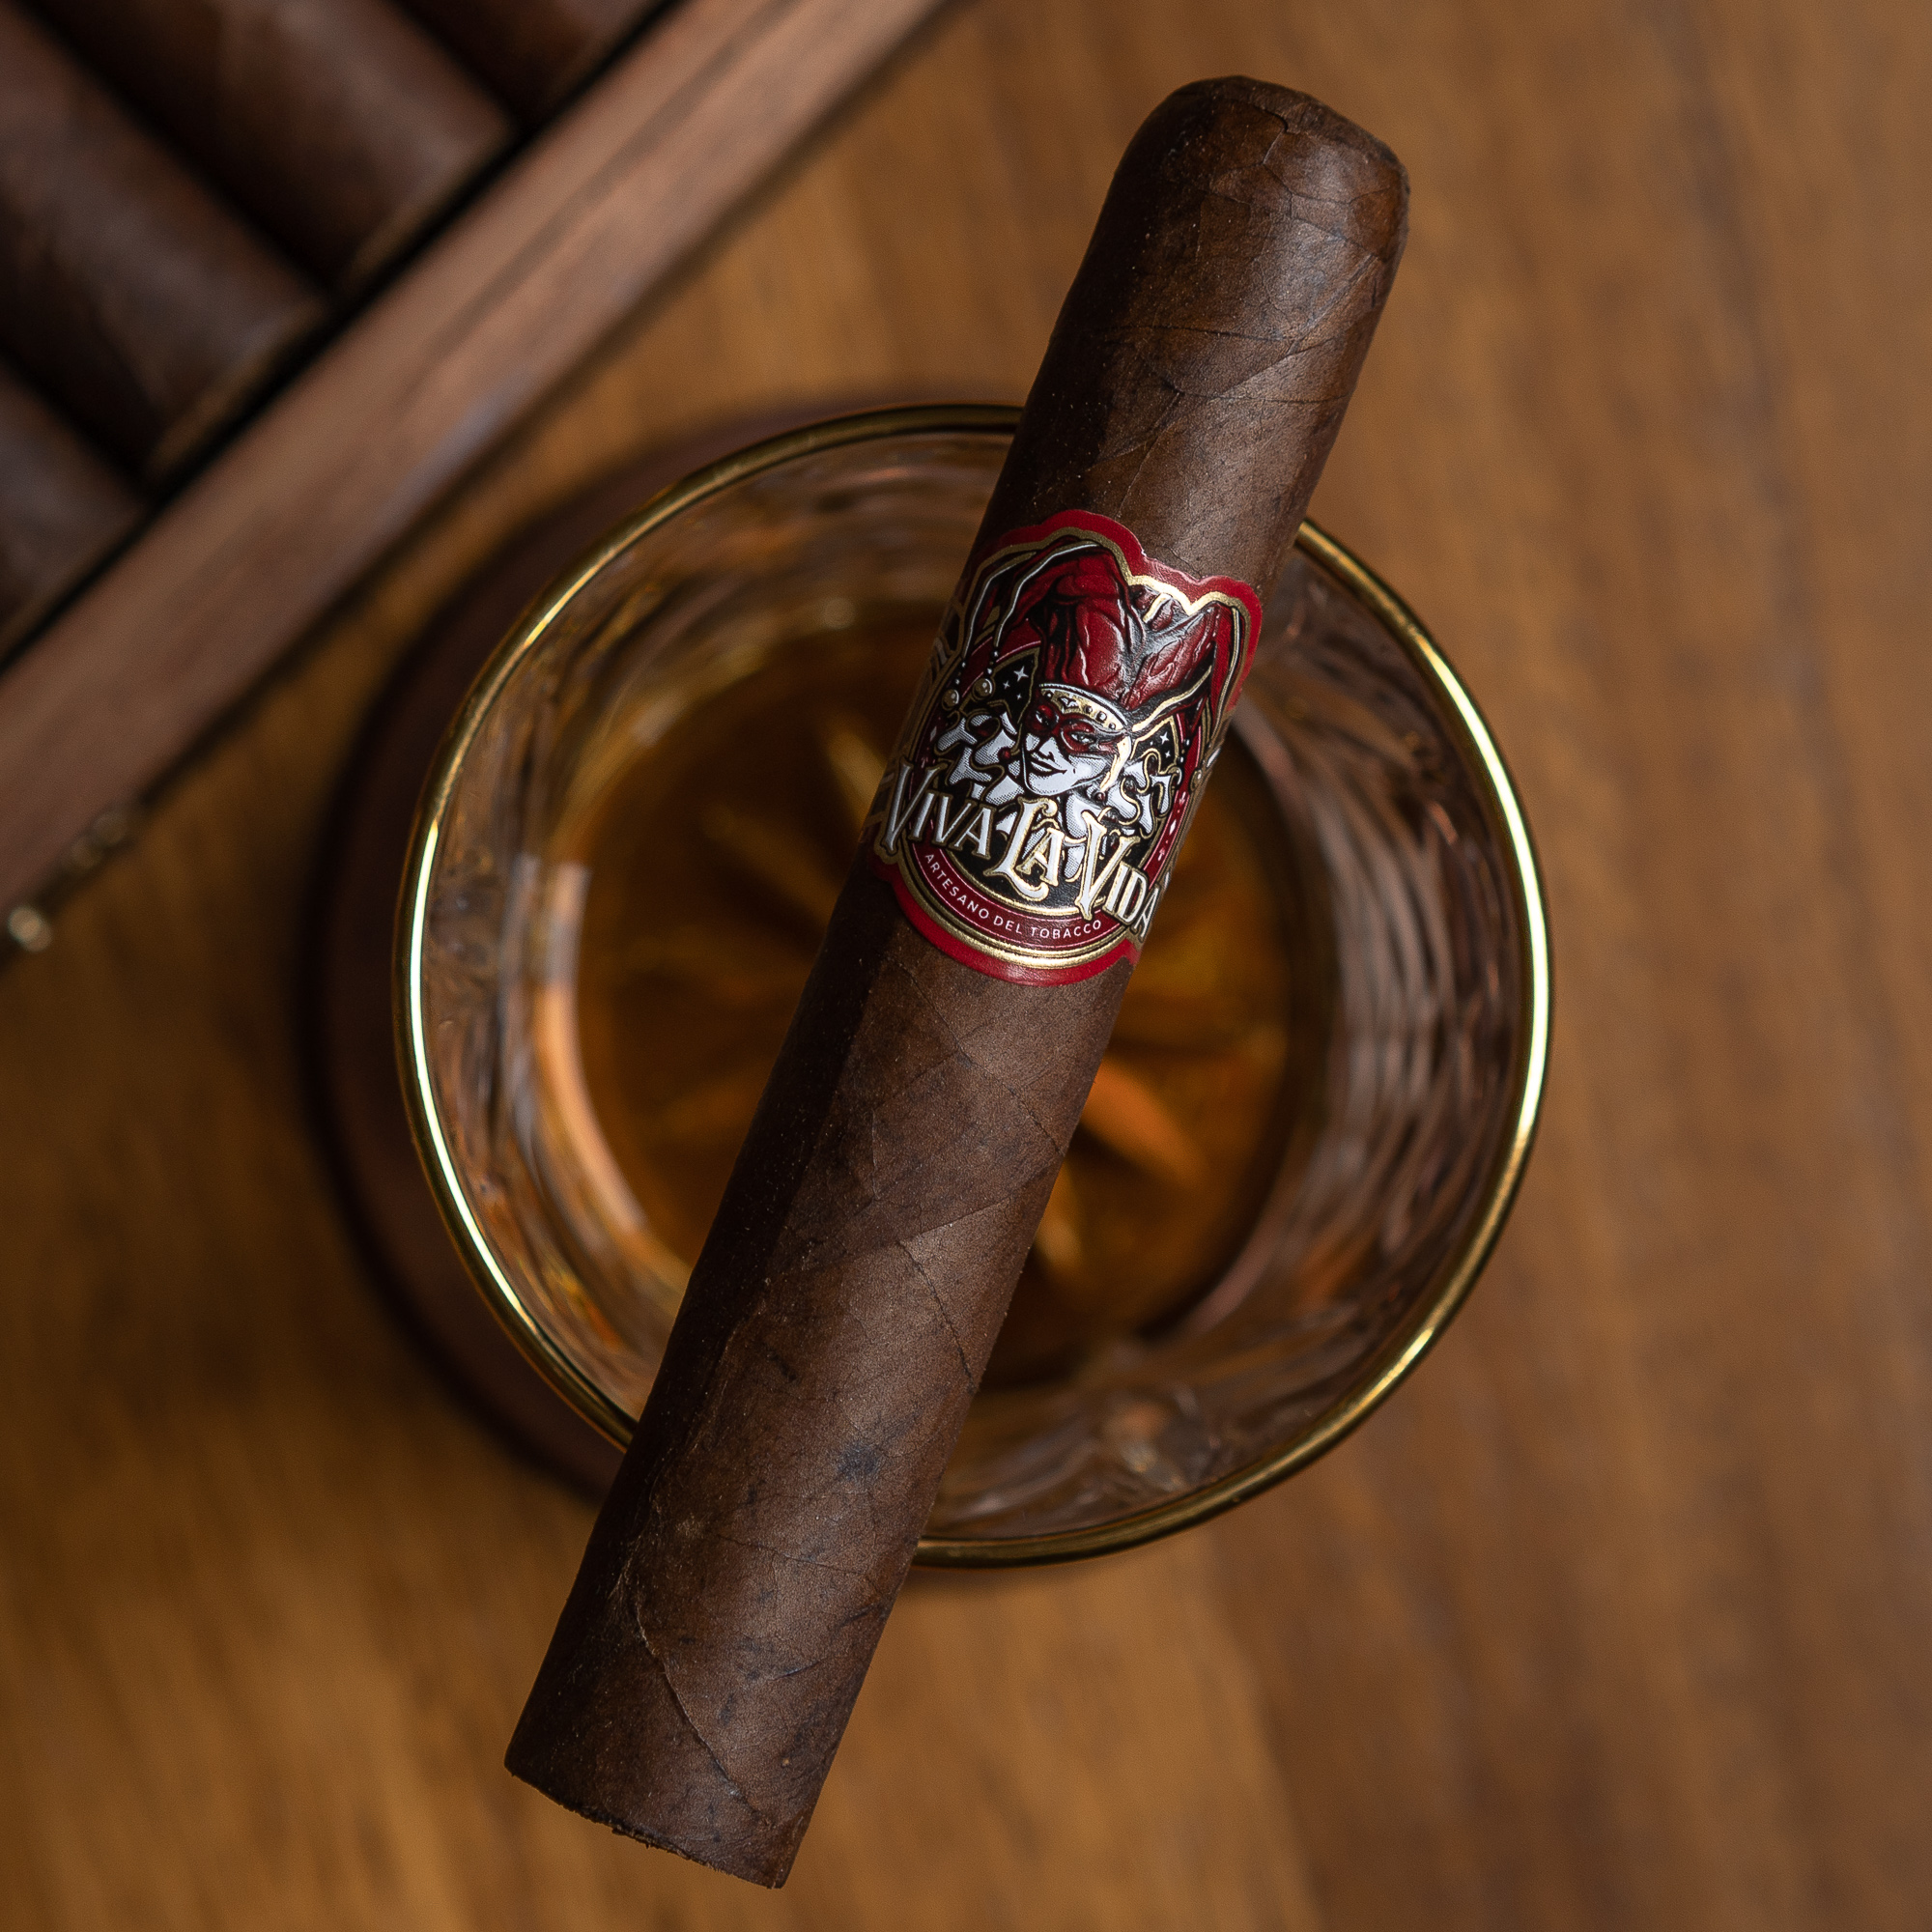 Viva La Vida Cigar Review